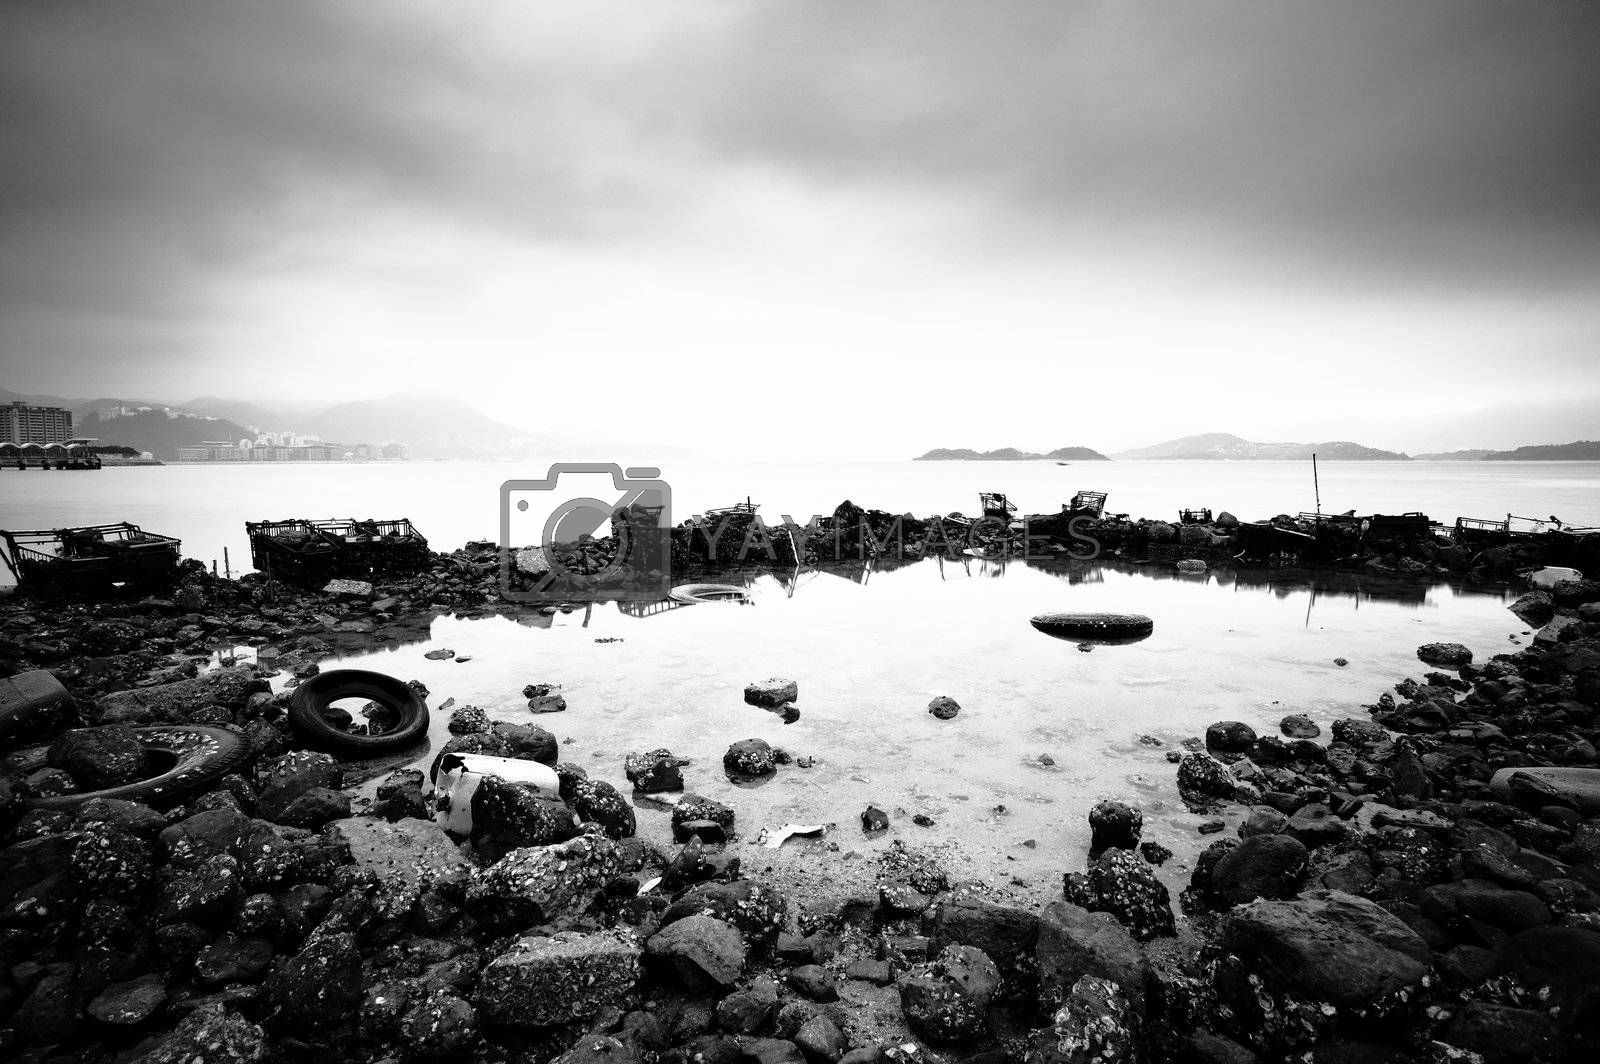 some wasted stuffs at the coastline by leungchopan